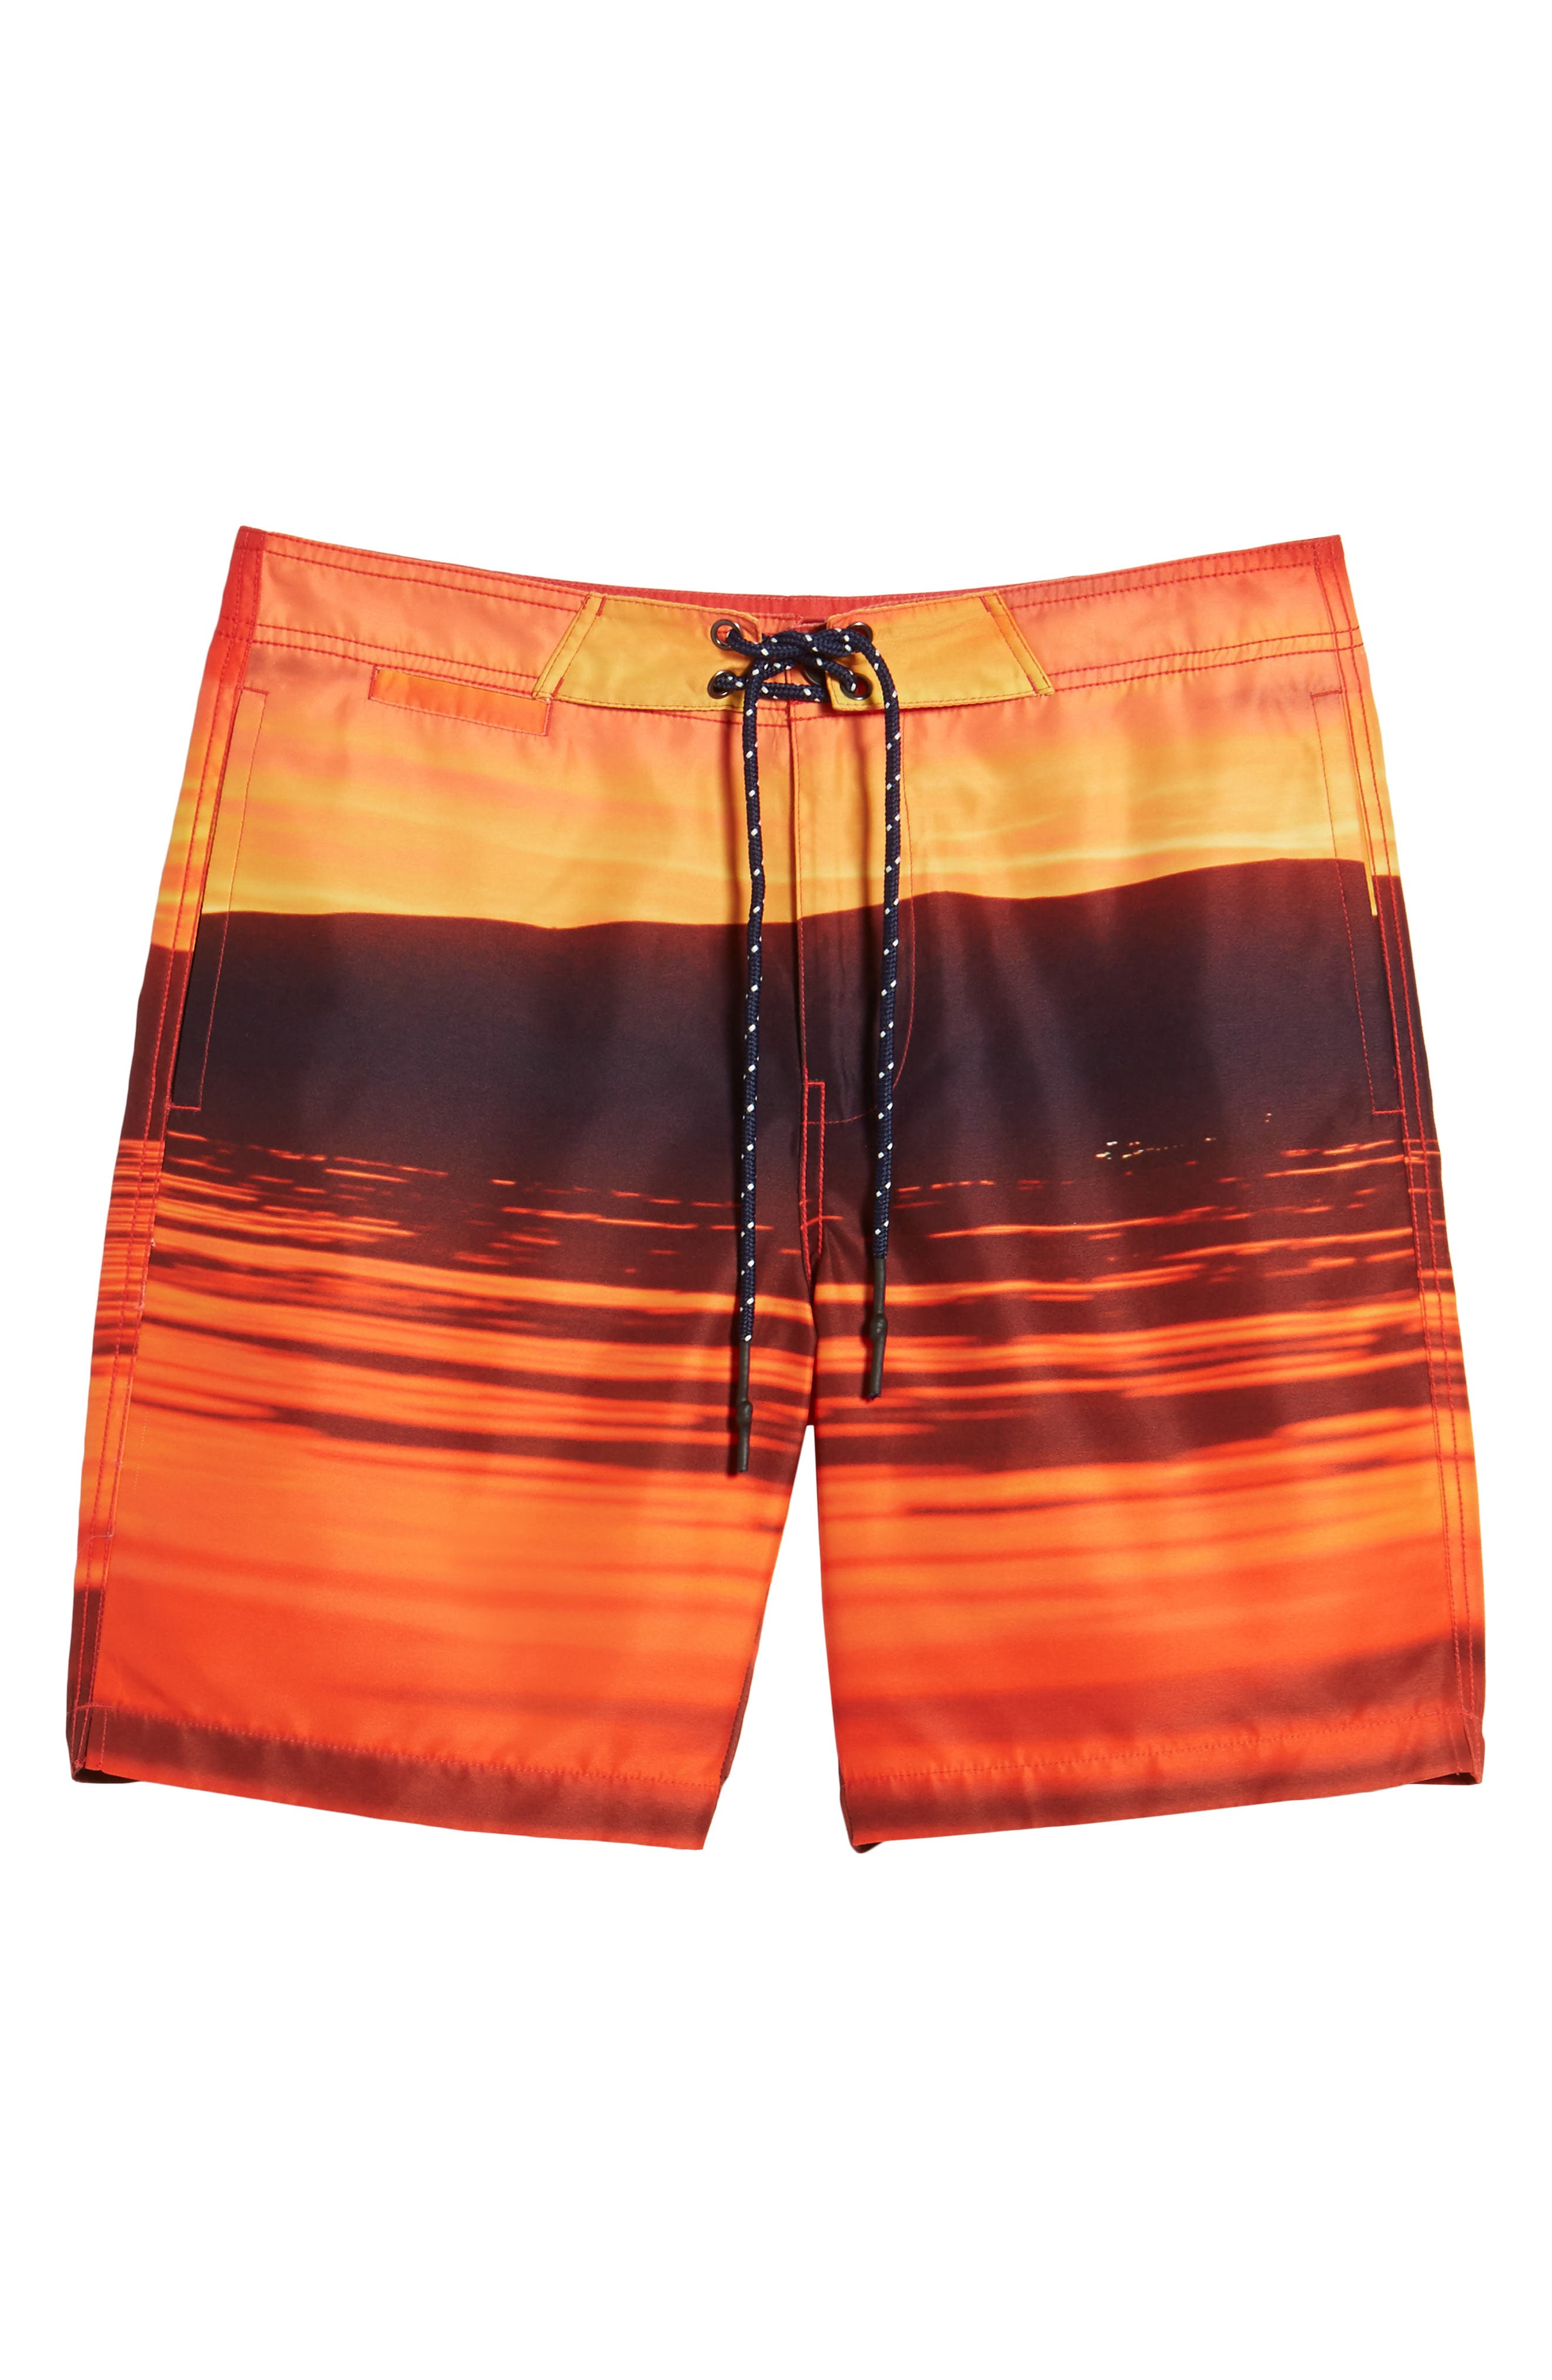 Red Sea Photo Real Board Shorts,                             Alternate thumbnail 6, color,                             Mars Red